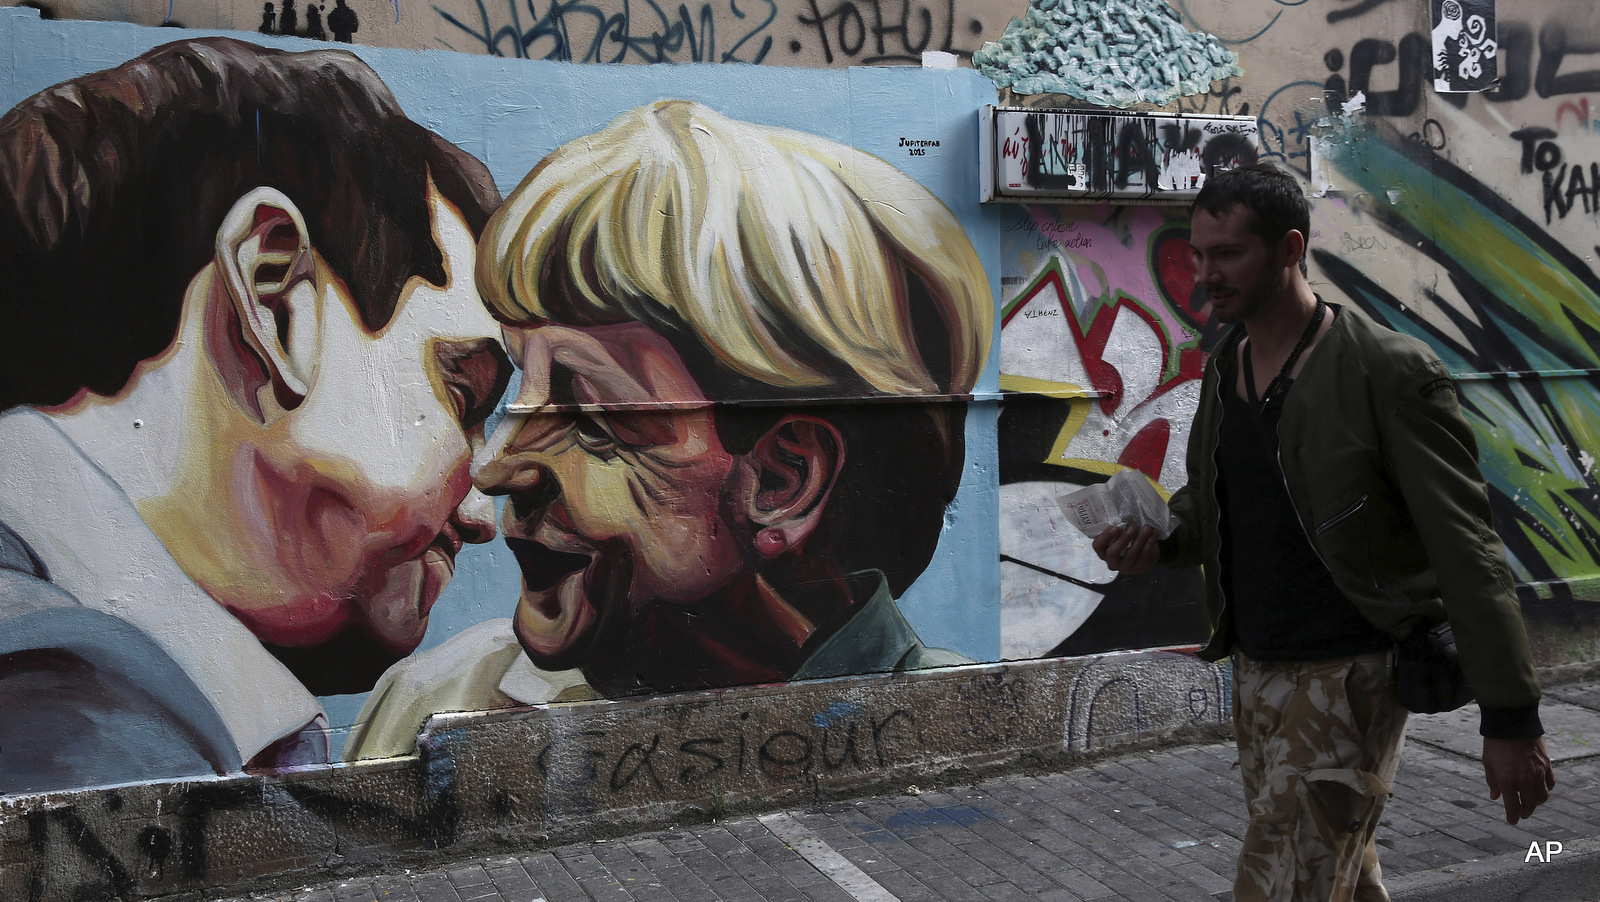 FILE - In this Sunday, Oct. 18, 2015 file photo, a man walks past street art depicting Greek Prime Minister Alexis Tsipras and German Chancellor Angela Merkel in Athens, Greece. Tsipras' decision to sign off on a bailout led to many in his left-wing Syriza party to quit in protest.